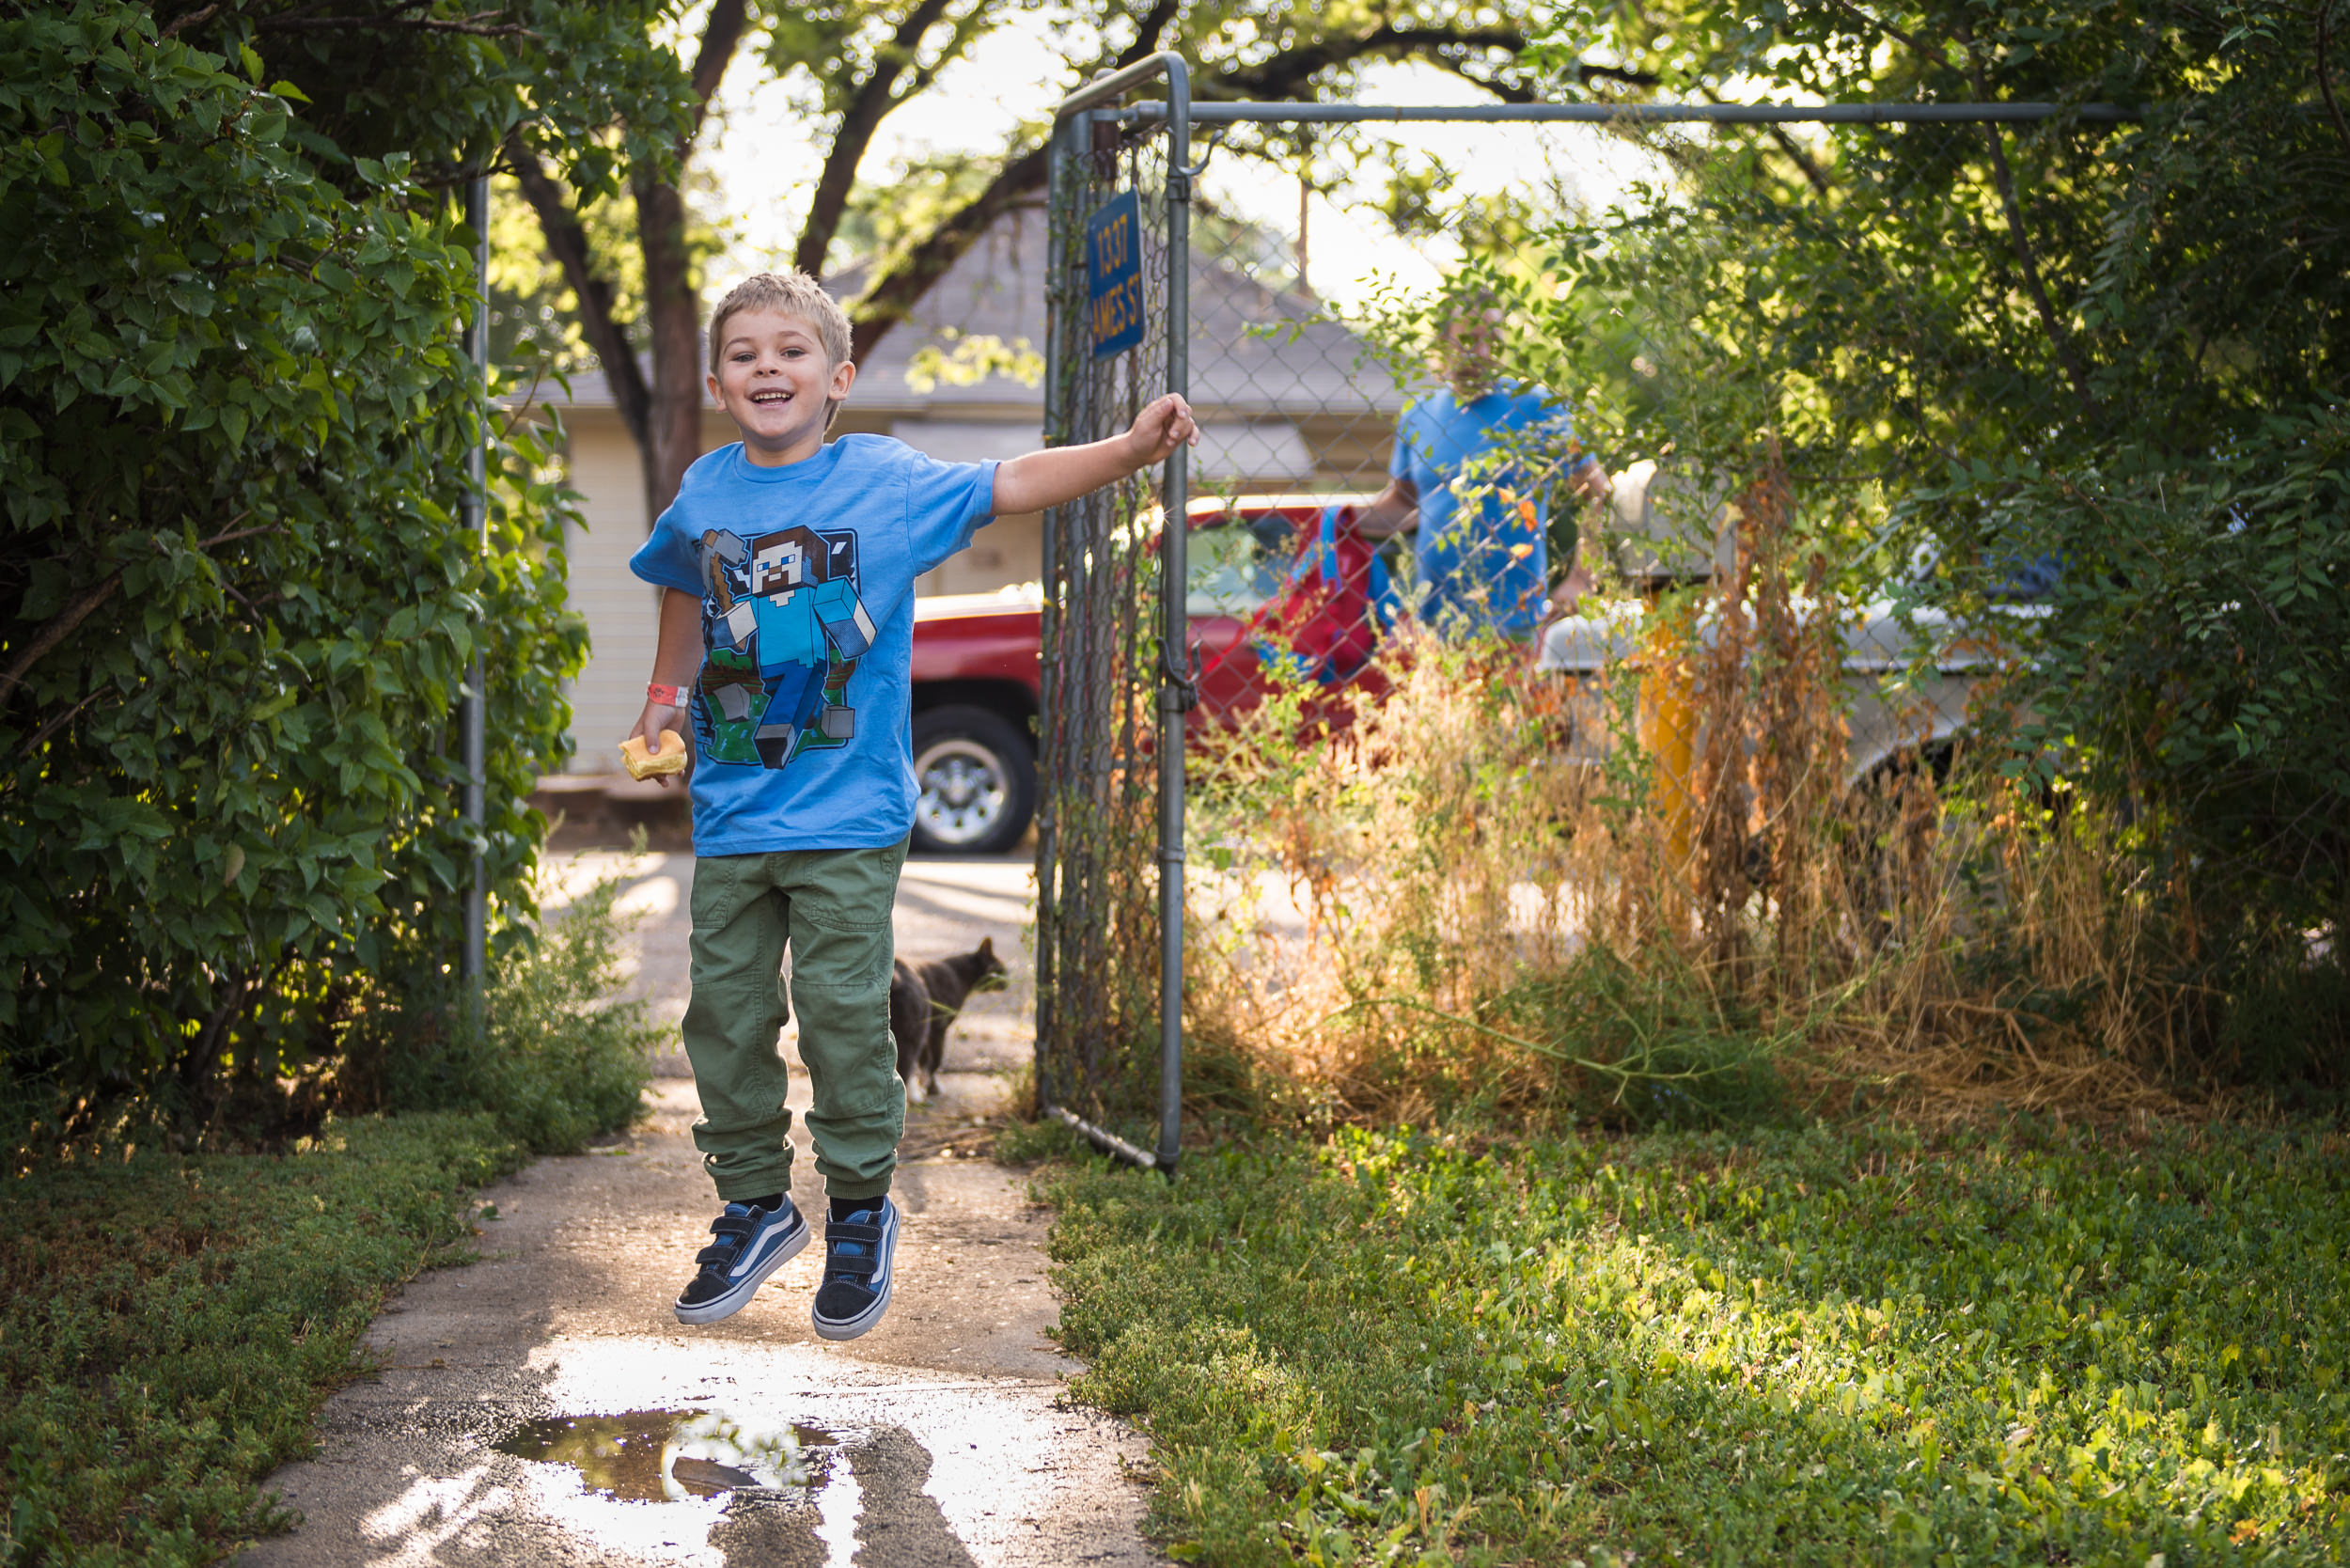 Blog - The Pen & Camera - Gratitude Journal, Inspirational, Motherhood, Writing, Denver, Colorado -  boy jumping on first day of kindergarten